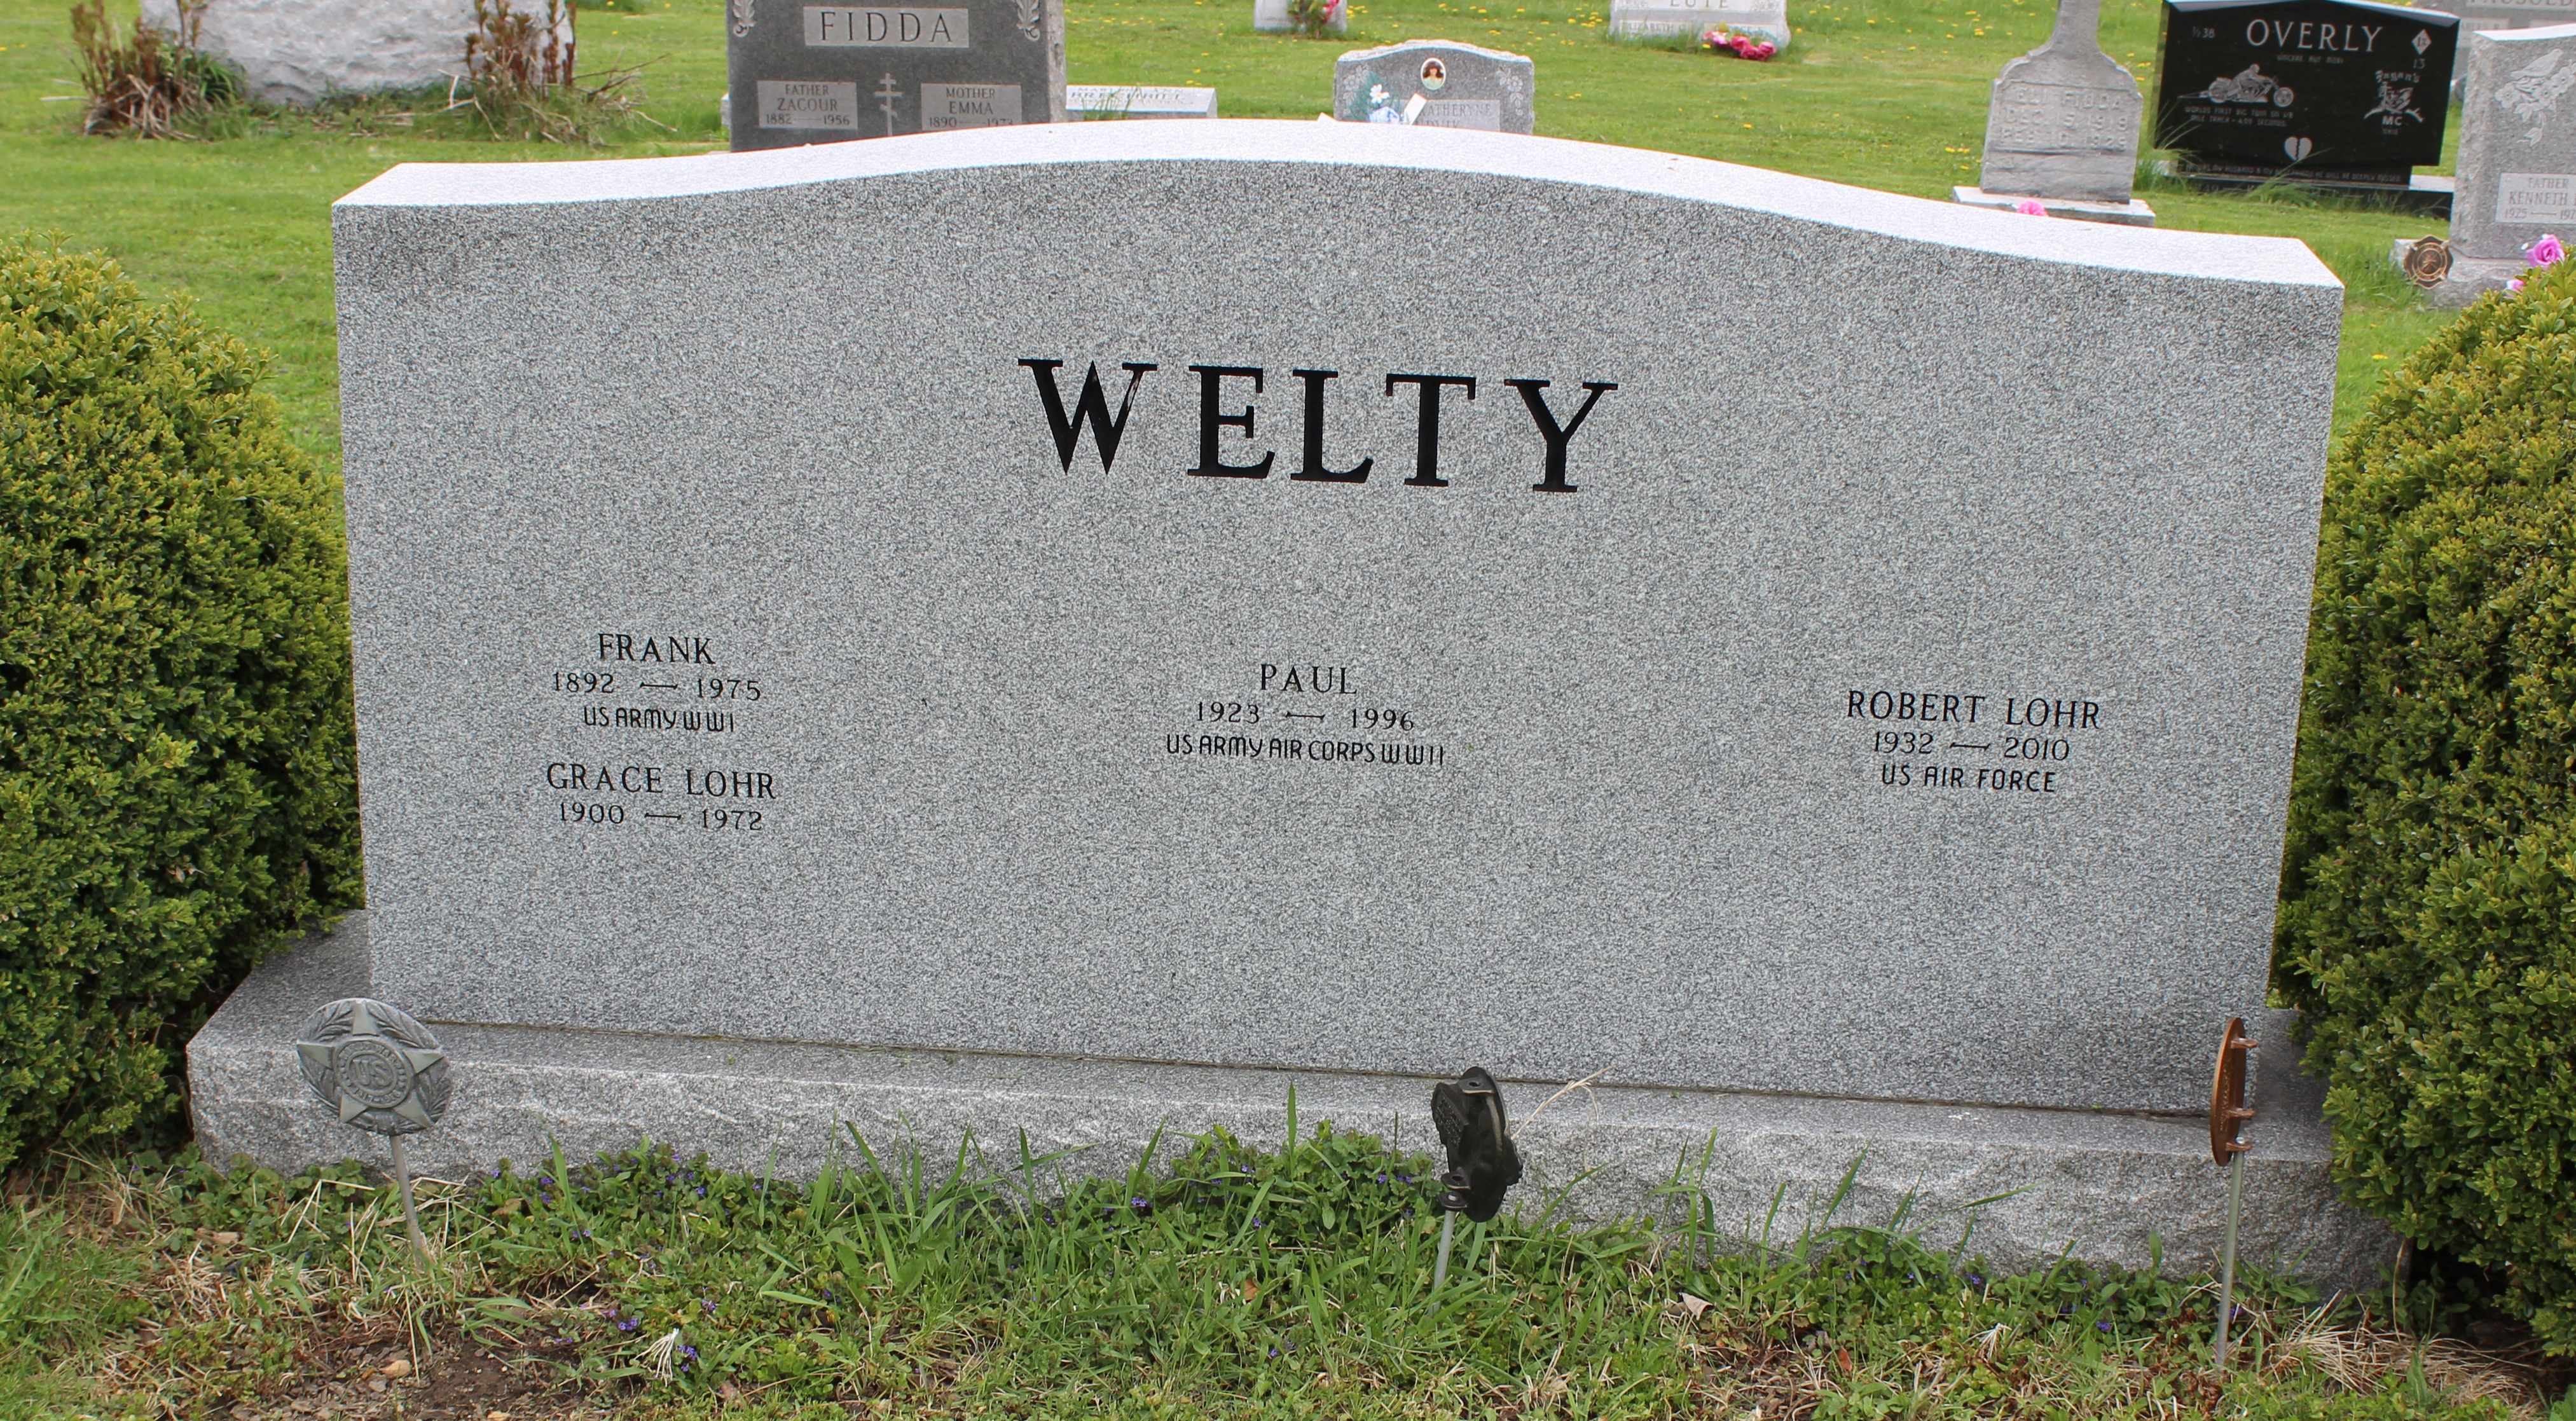 Frank Welty